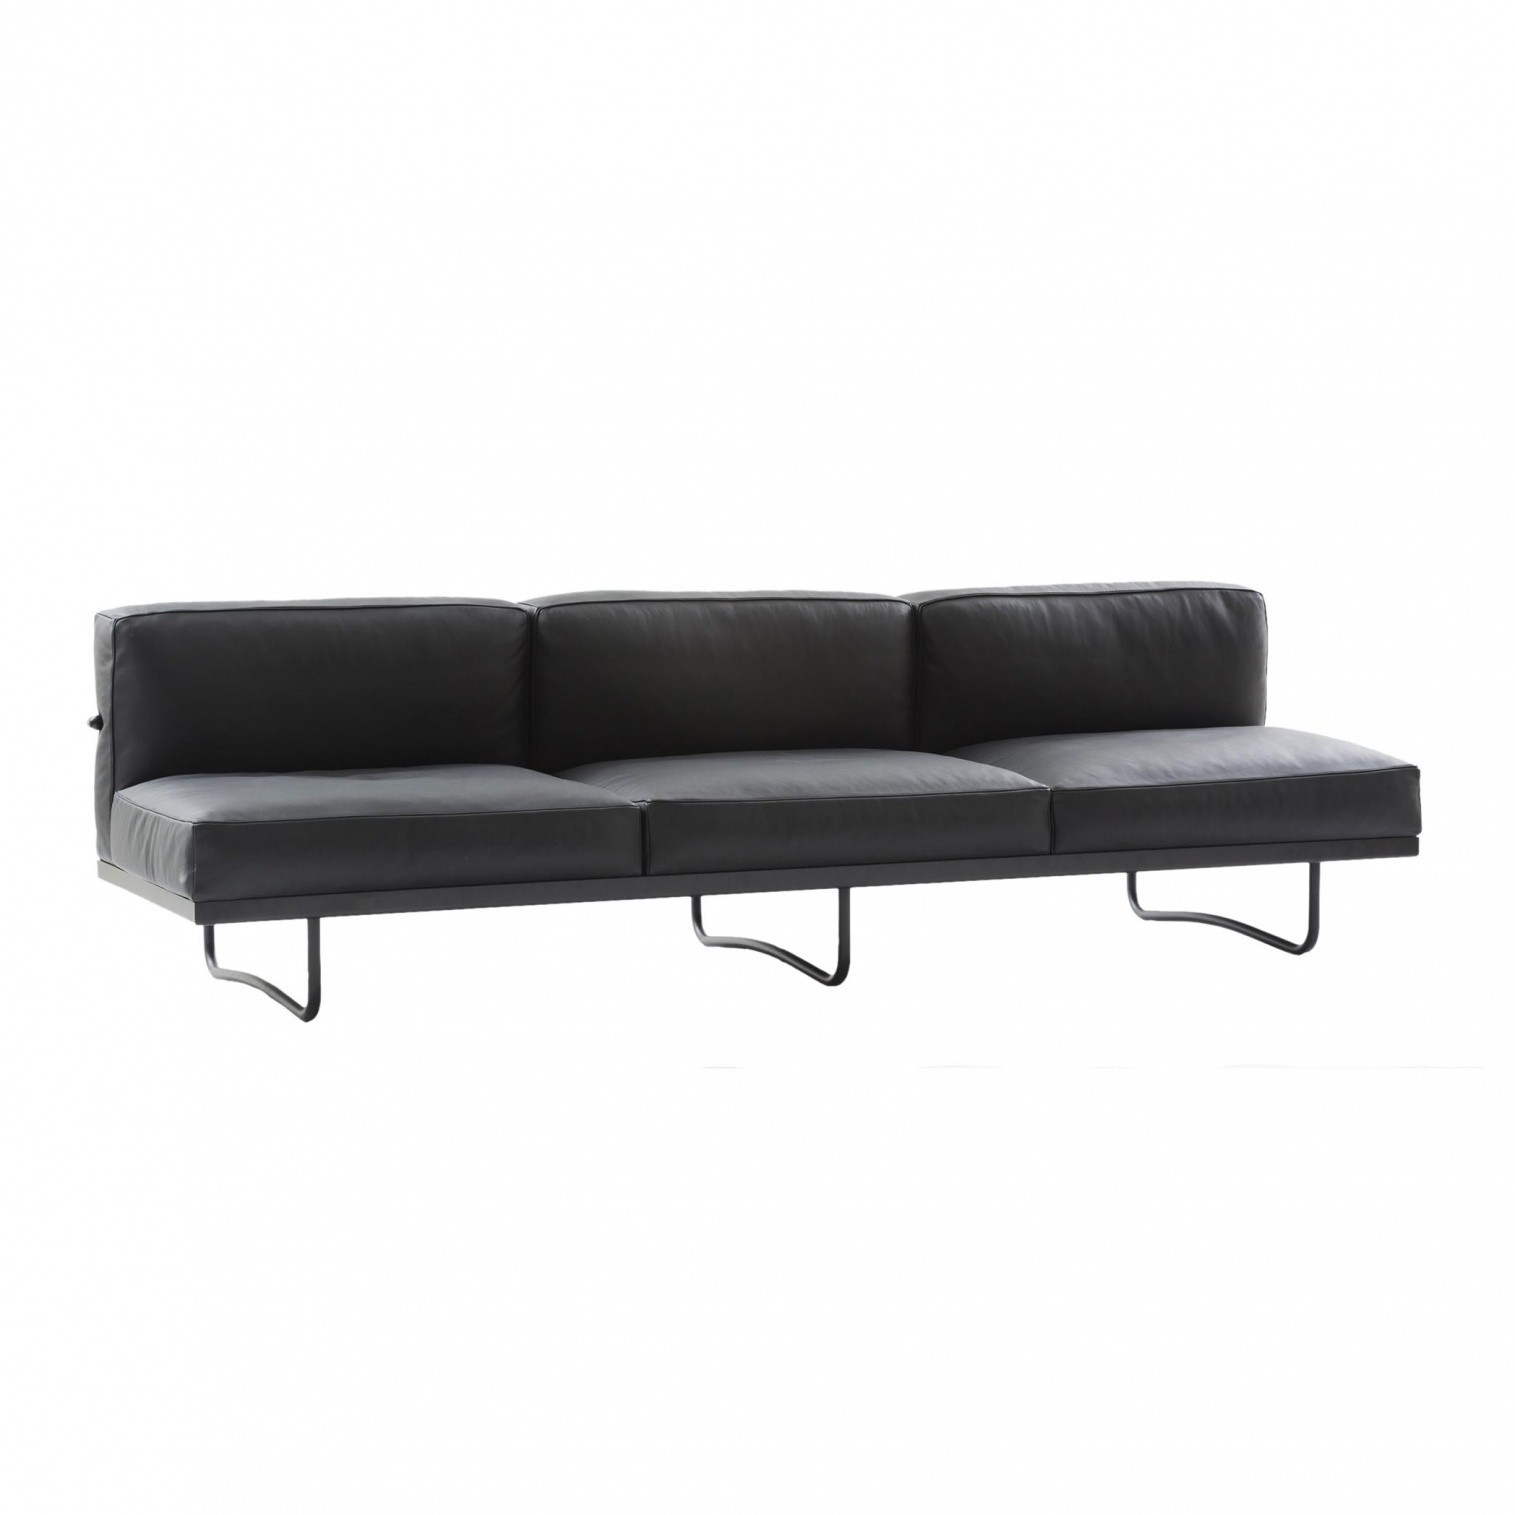 lc5 sofa price lee industries sofas and chairs cassina le corbusier 3 seater ambientedirect sitzer 256x78cm grafite